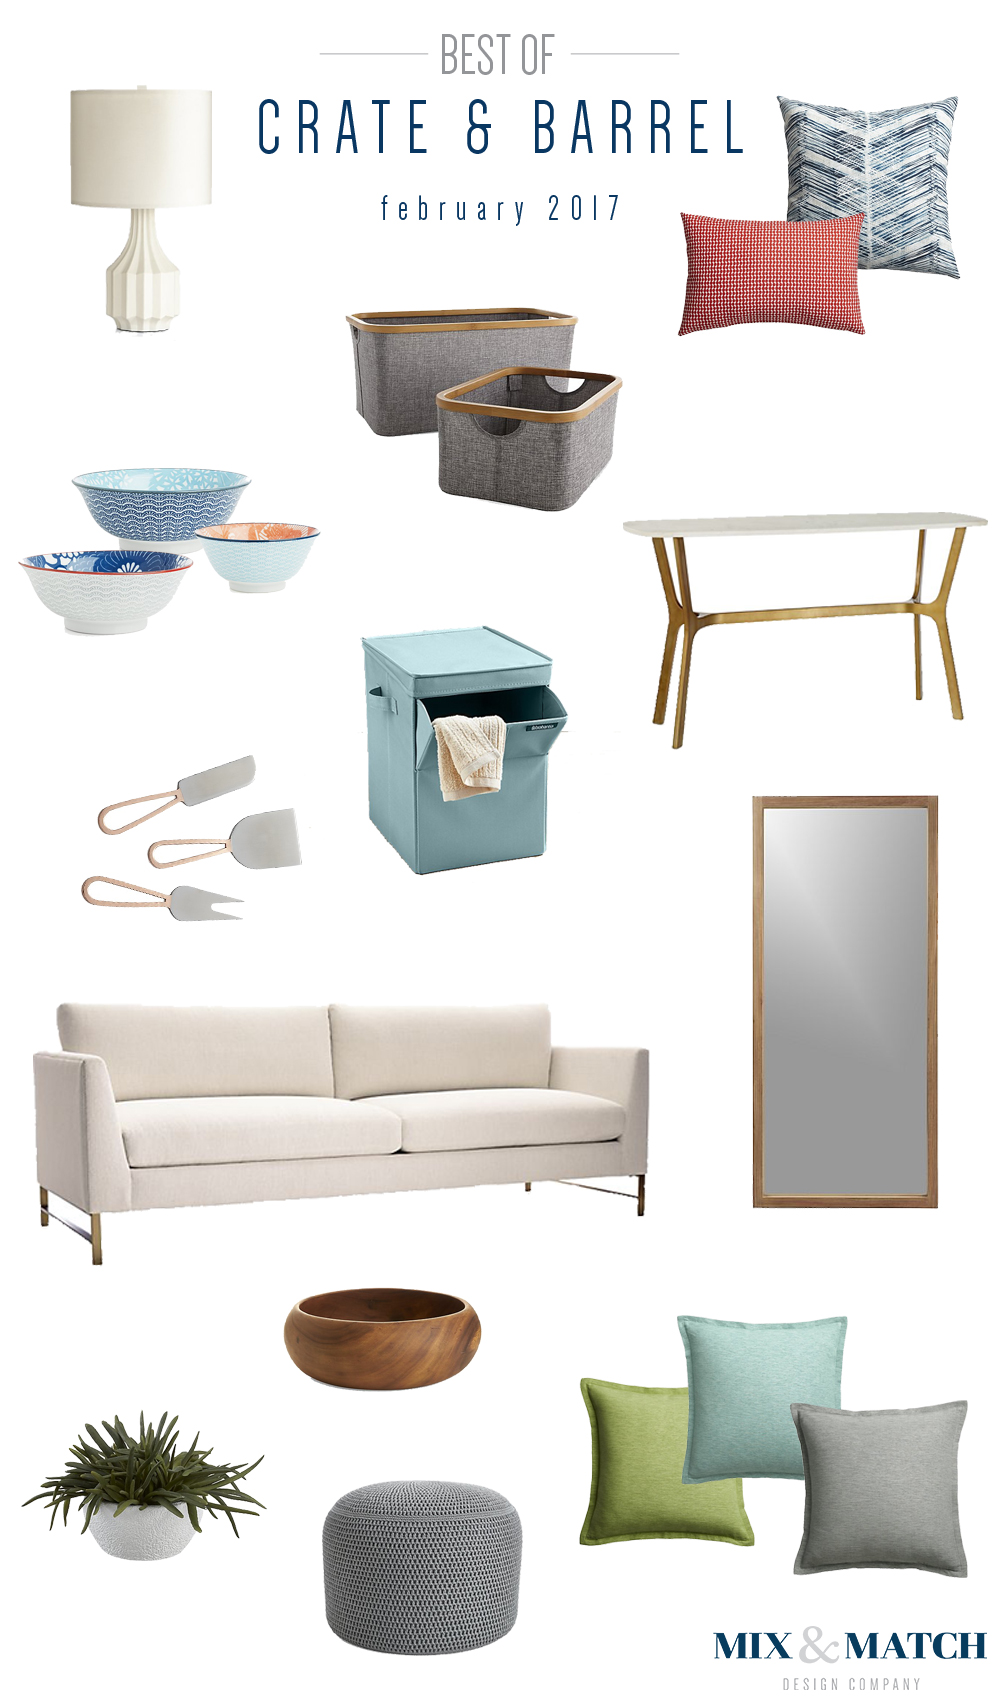 Mix & Match Design Company's favorite picks from Crate & Barrel.